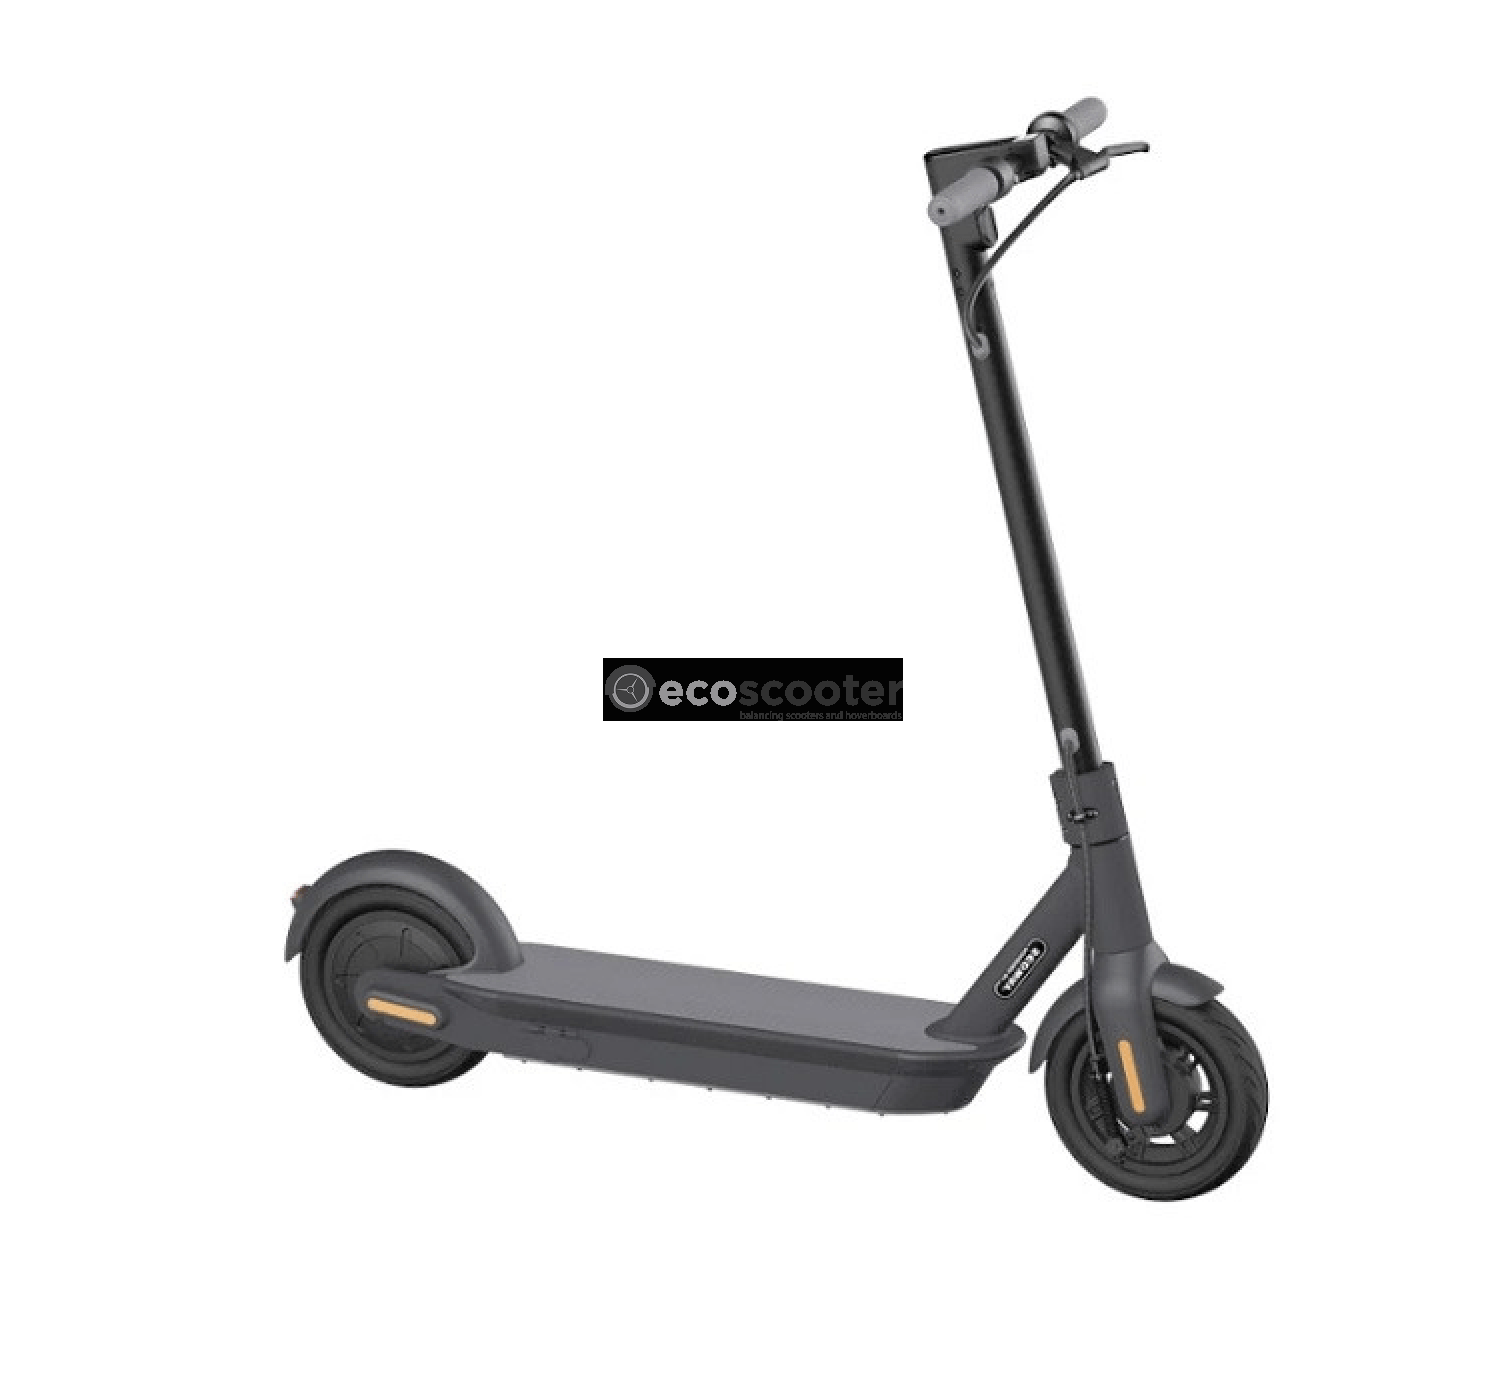 Electric Scooter Segway Ninebot Max G30 Black Ecoscooter Estonia